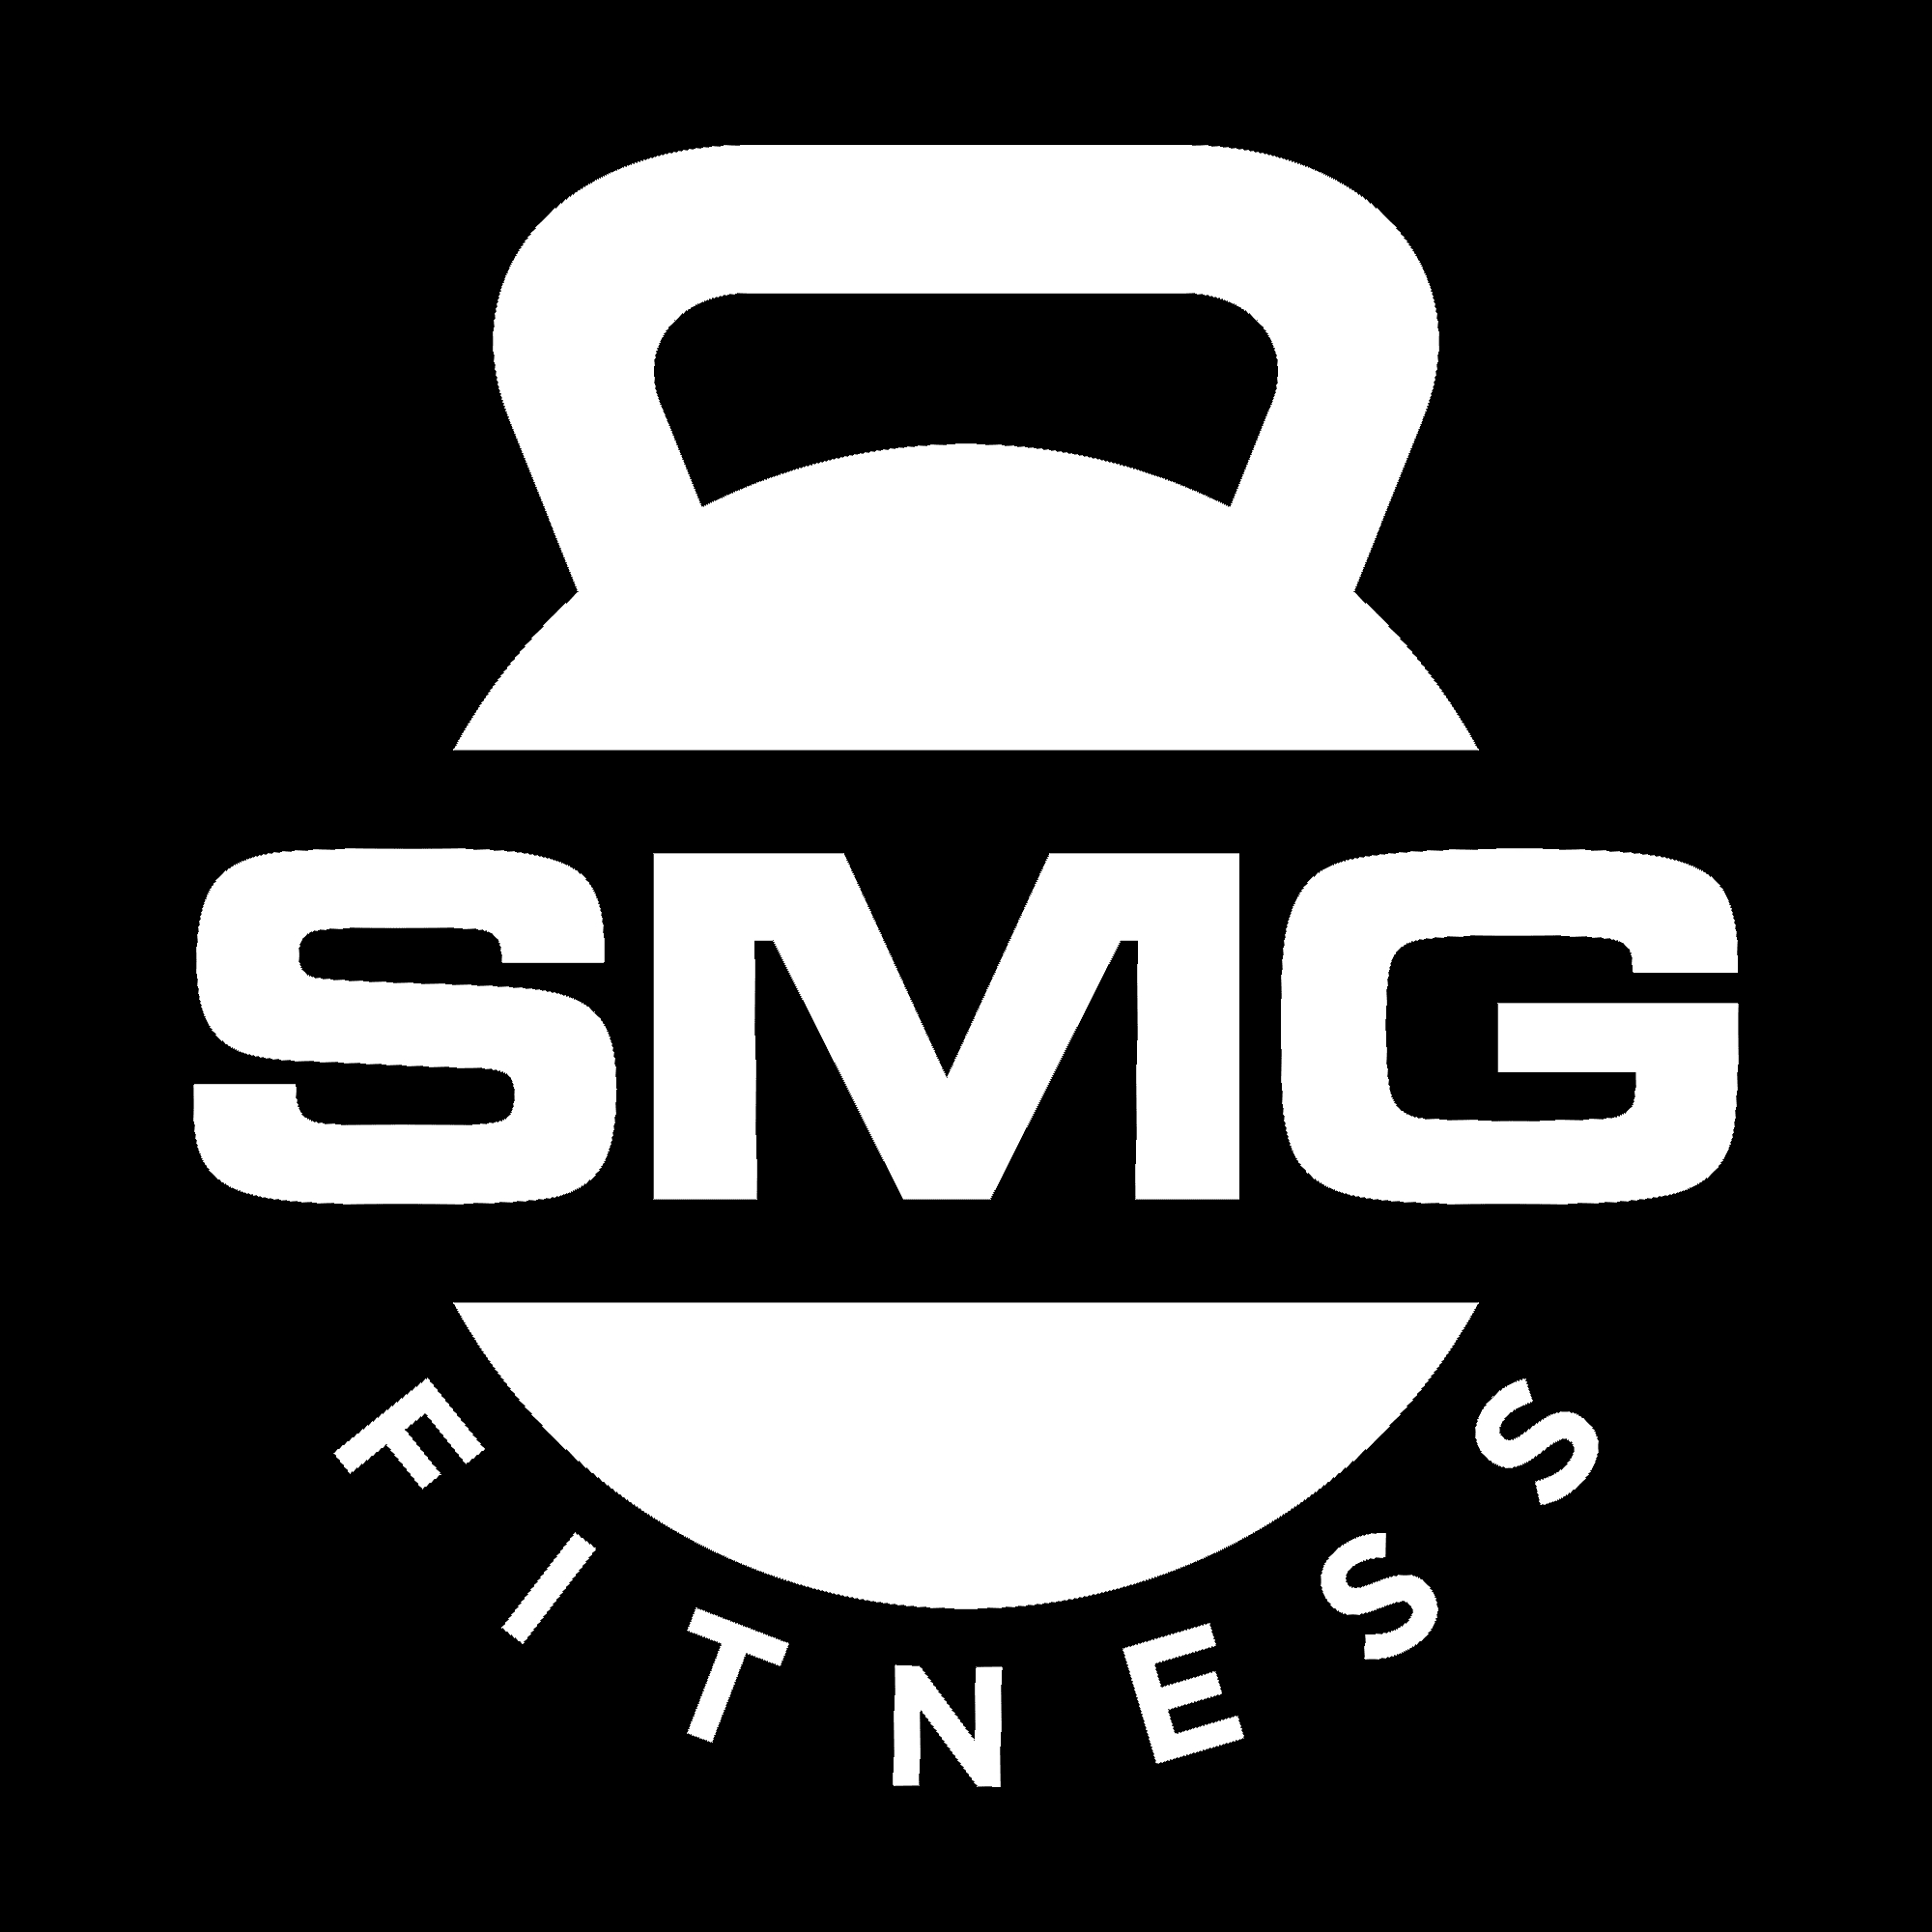 SMG Fitness - London, London N1 3DF - 07584 675928 | ShowMeLocal.com